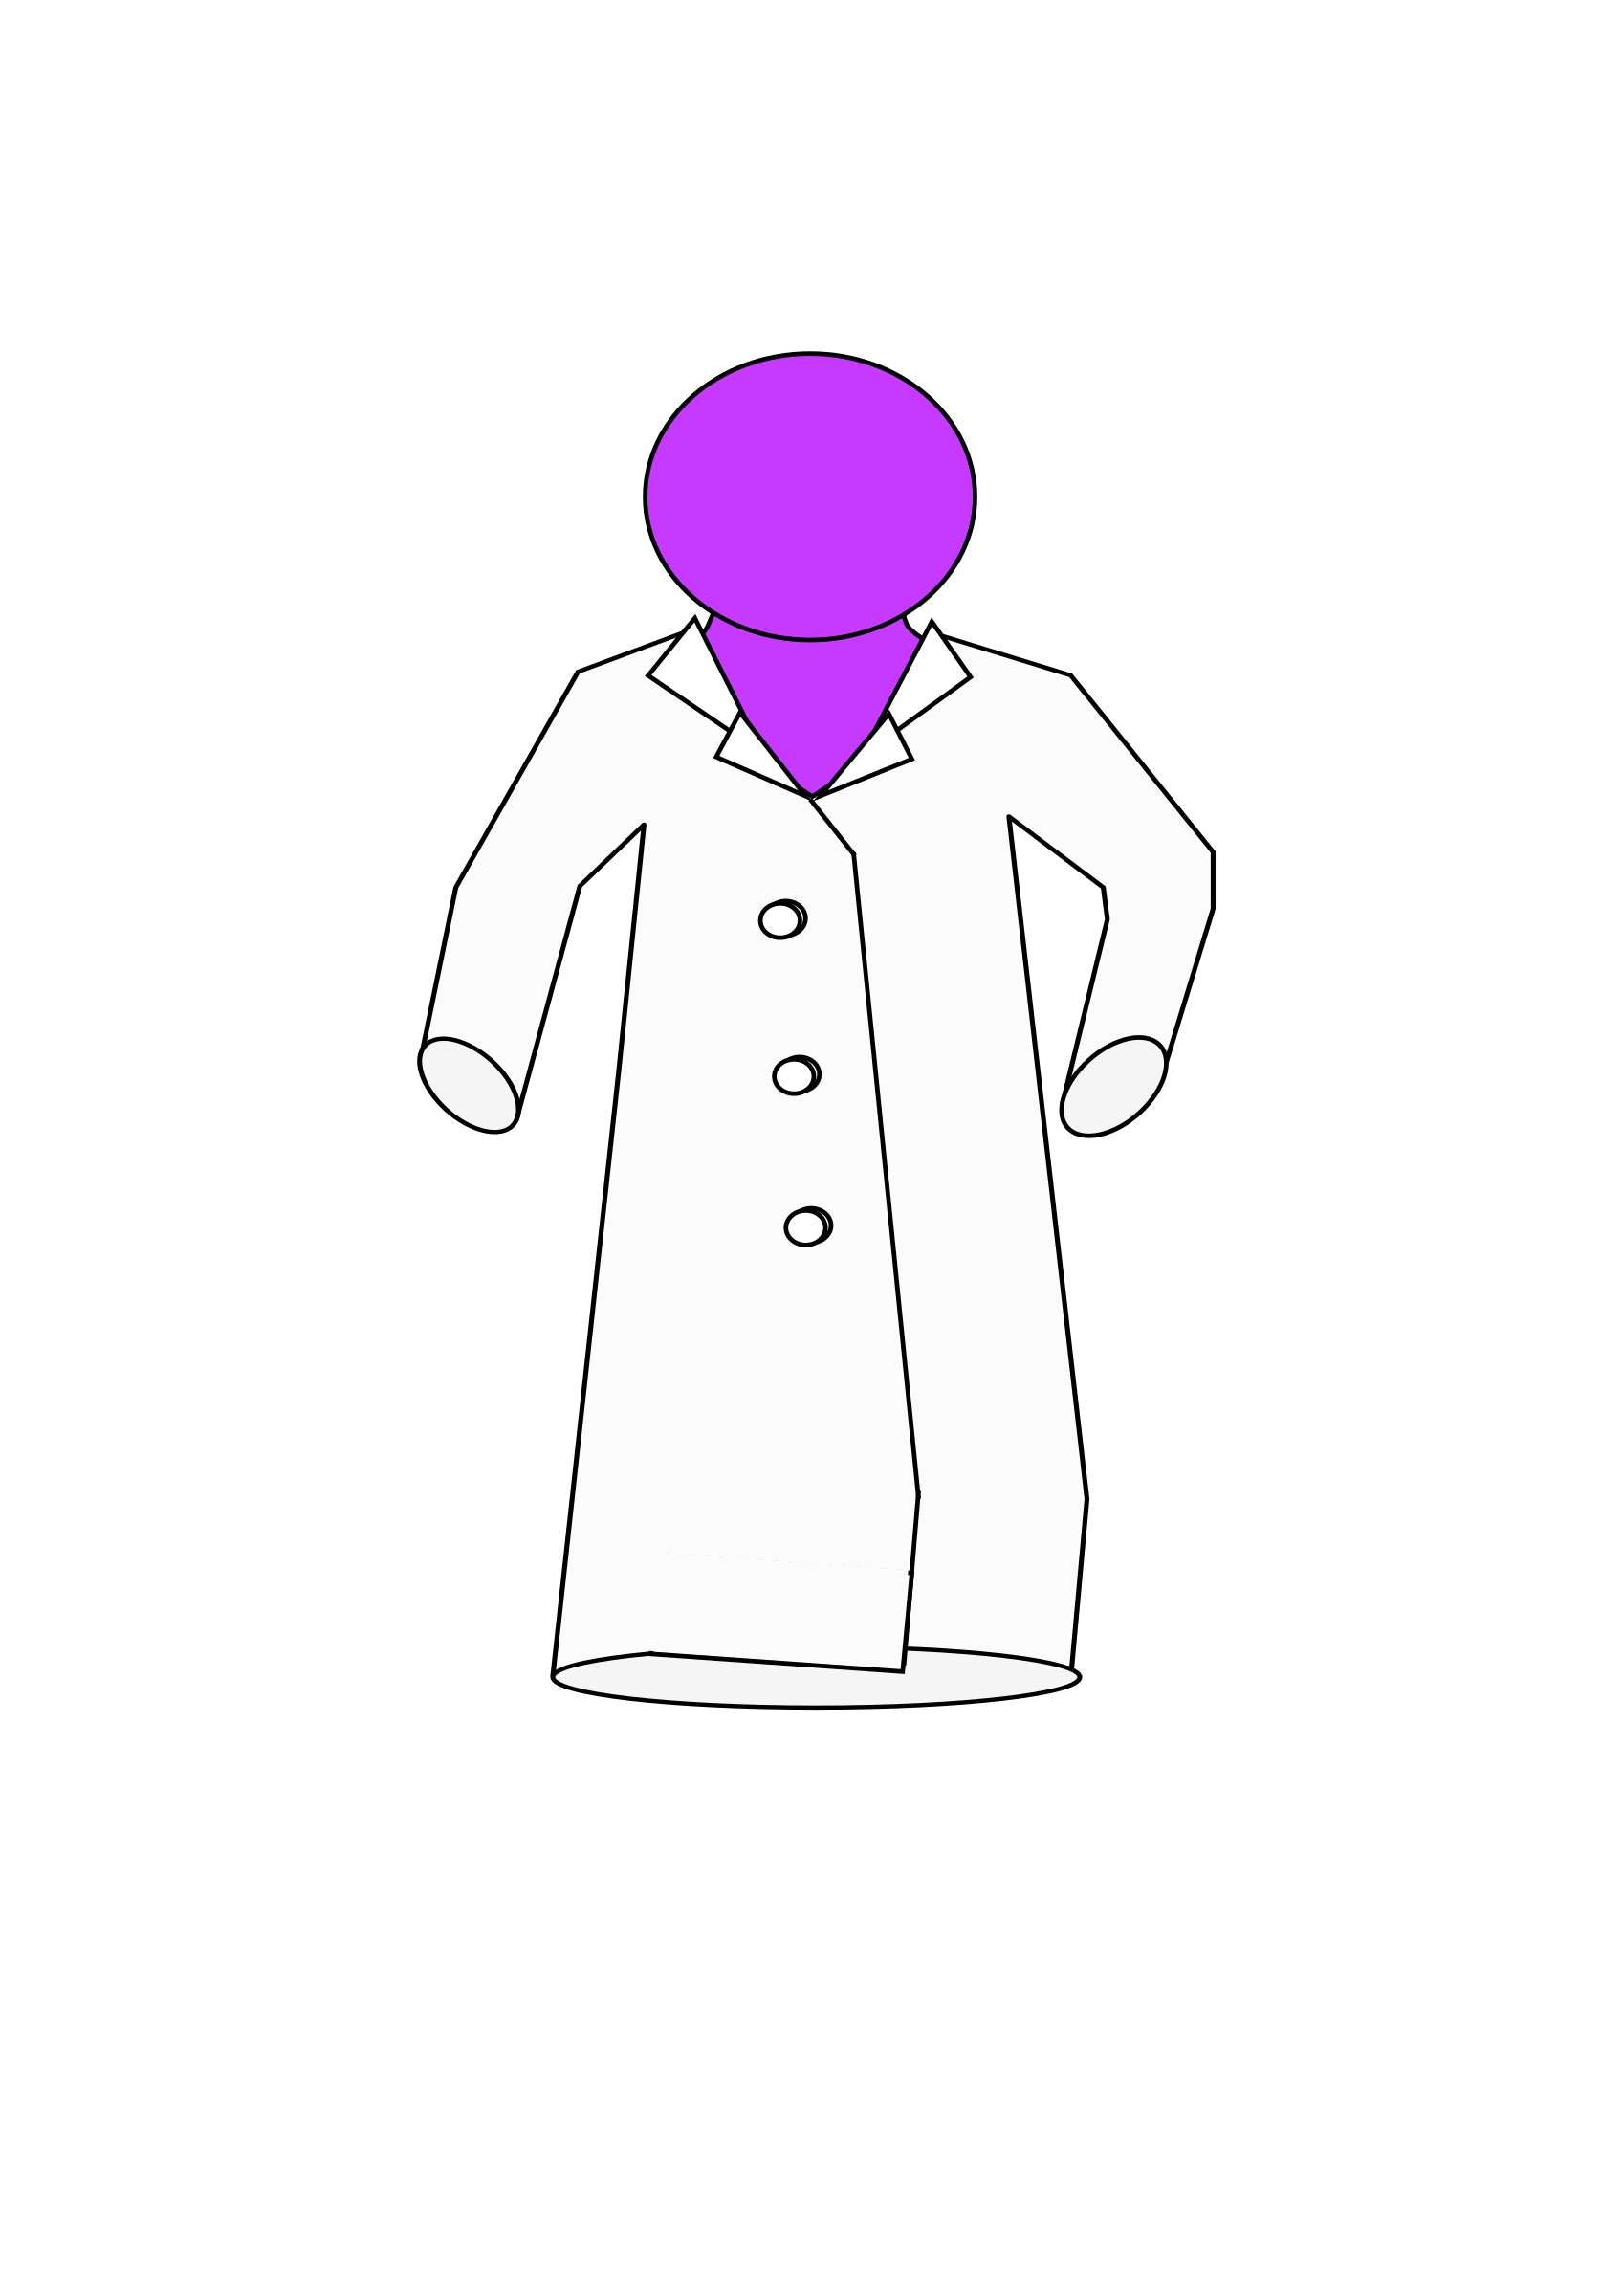 On purple figure big. Clipart coat lab coat